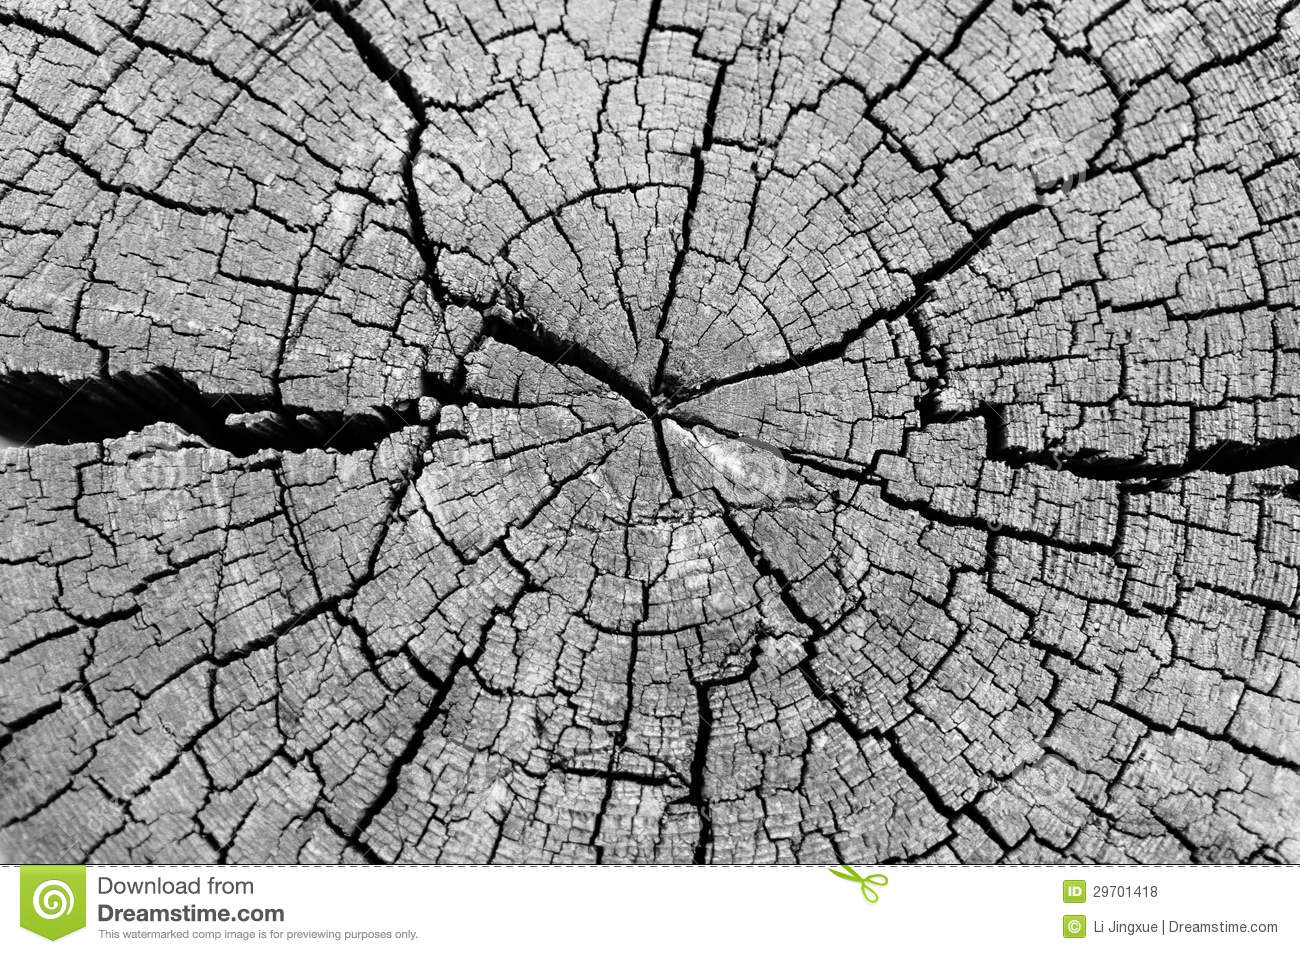 Black And White Cut Log Showing Tree Rings And Cracks